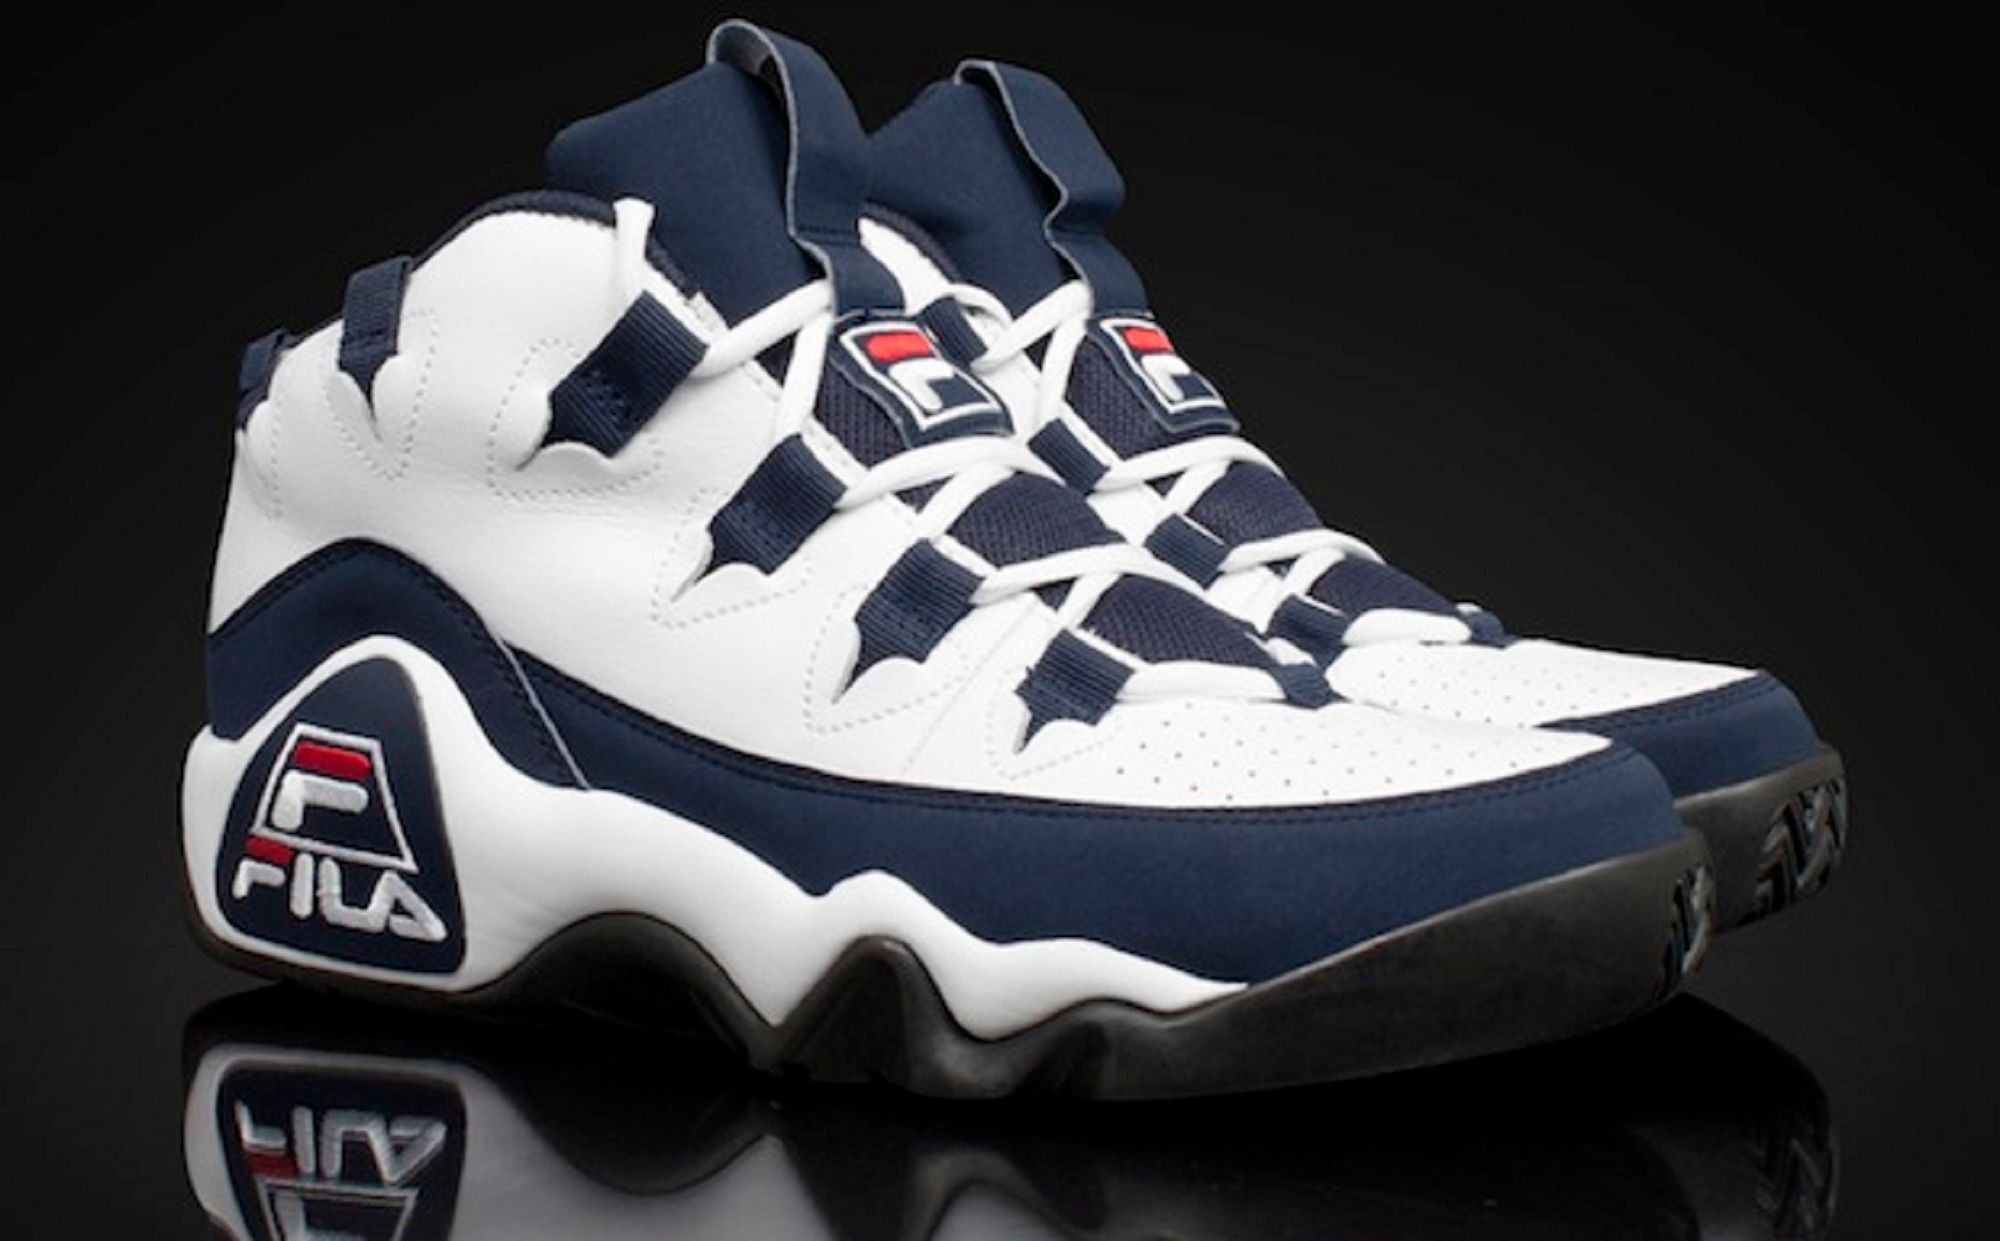 Top 15 Greatest Retro Signature Basketball Sneakers of All Time